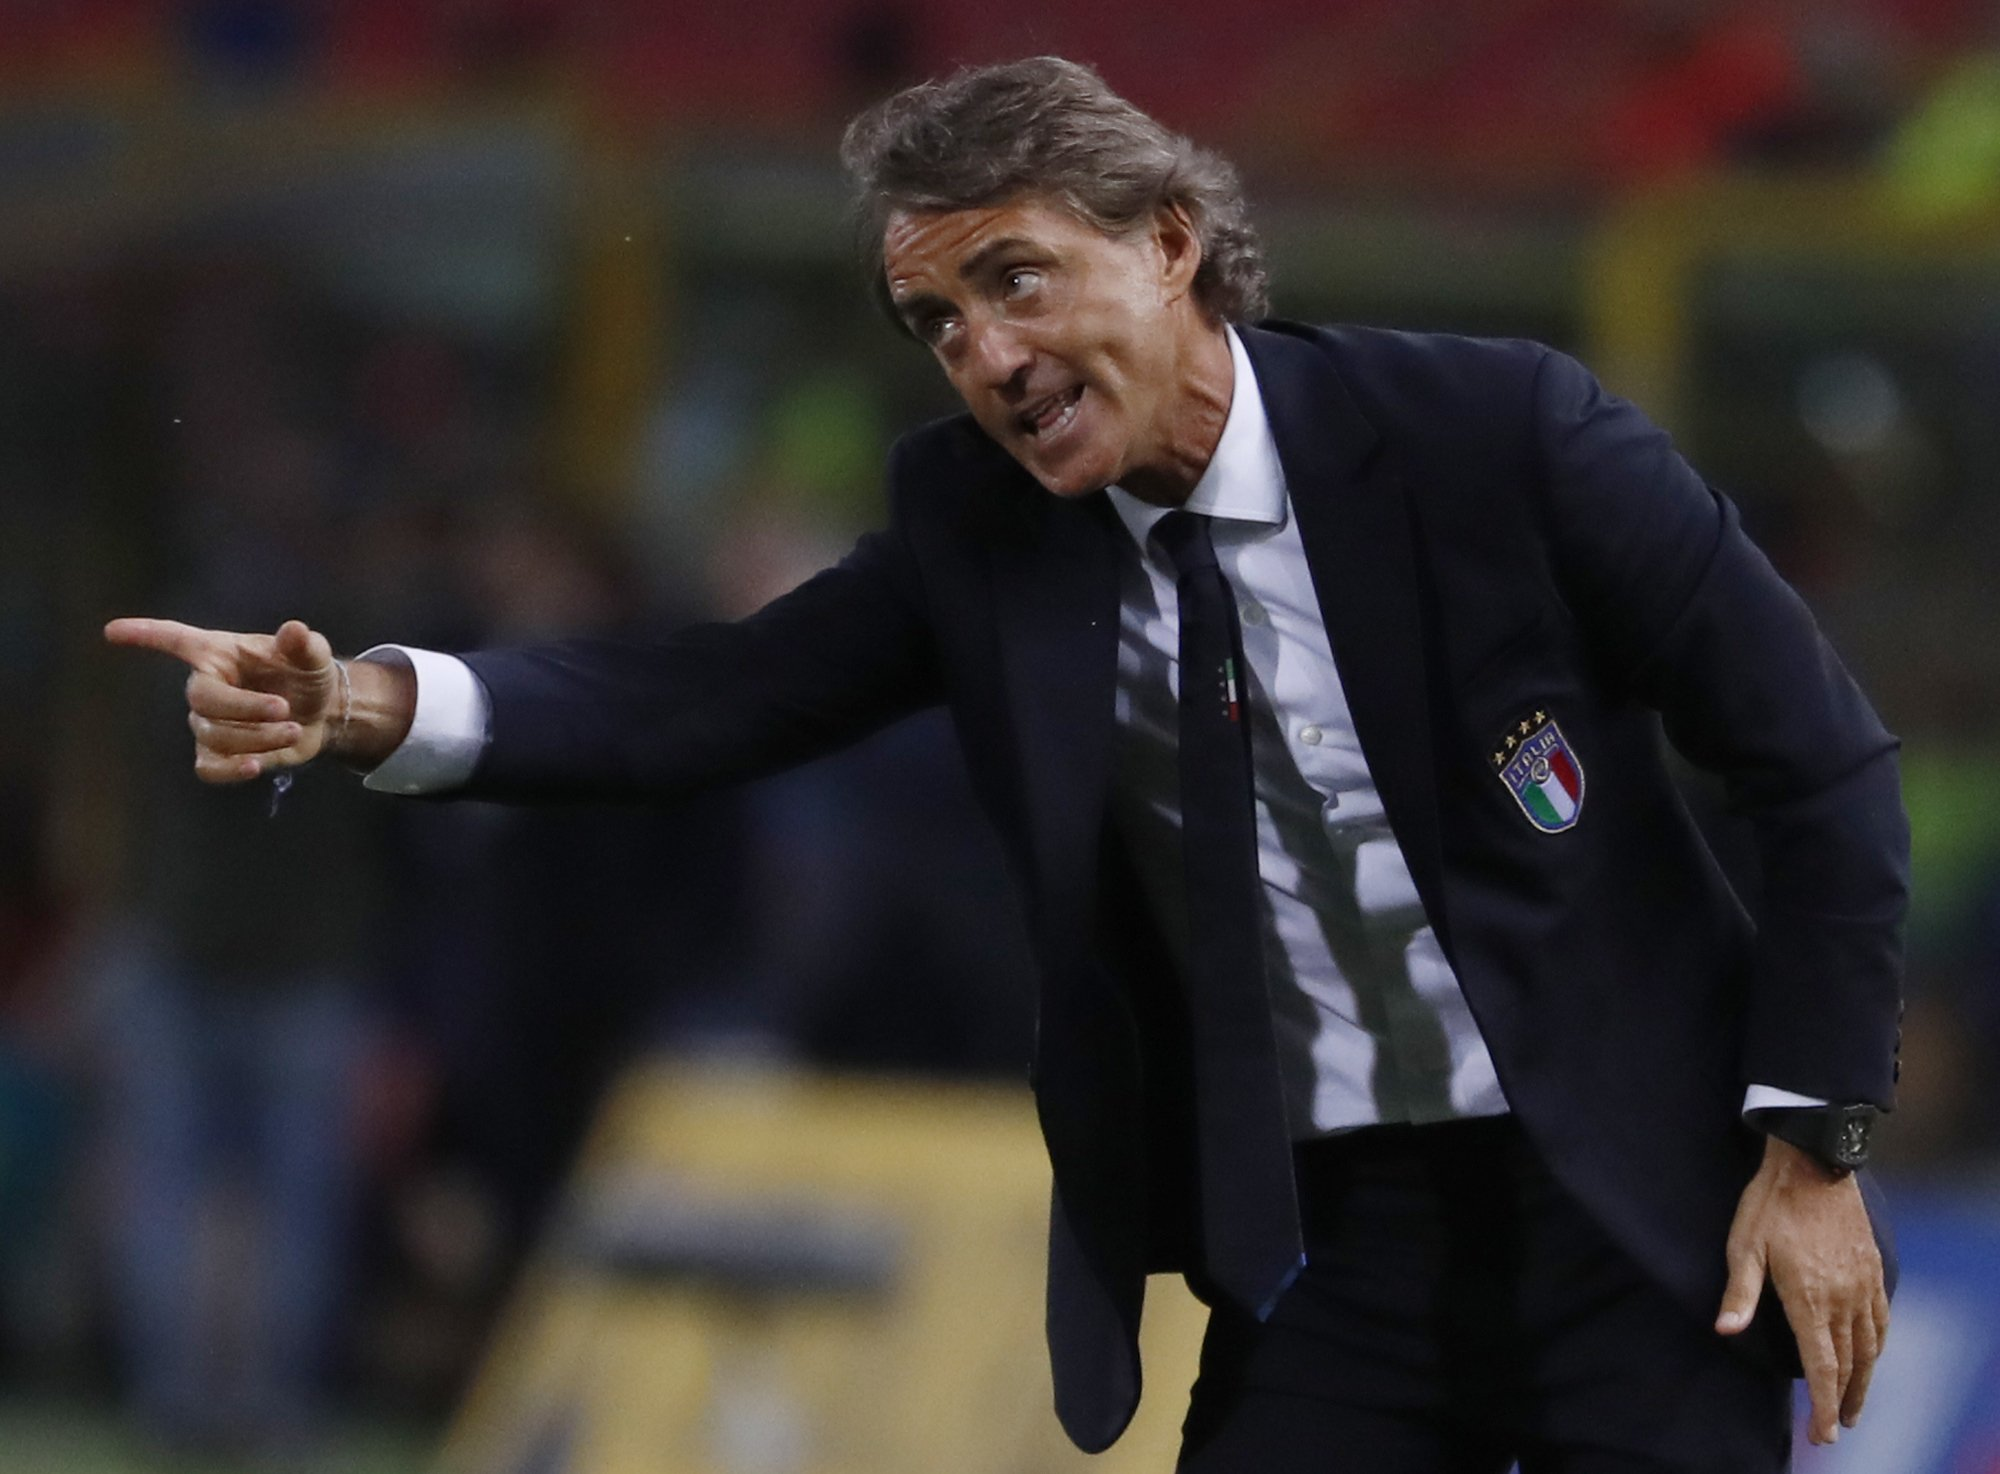 Roberto Mancini has achieved an astonishing win percentage of 69% that stands highest among all the previous Italy managers